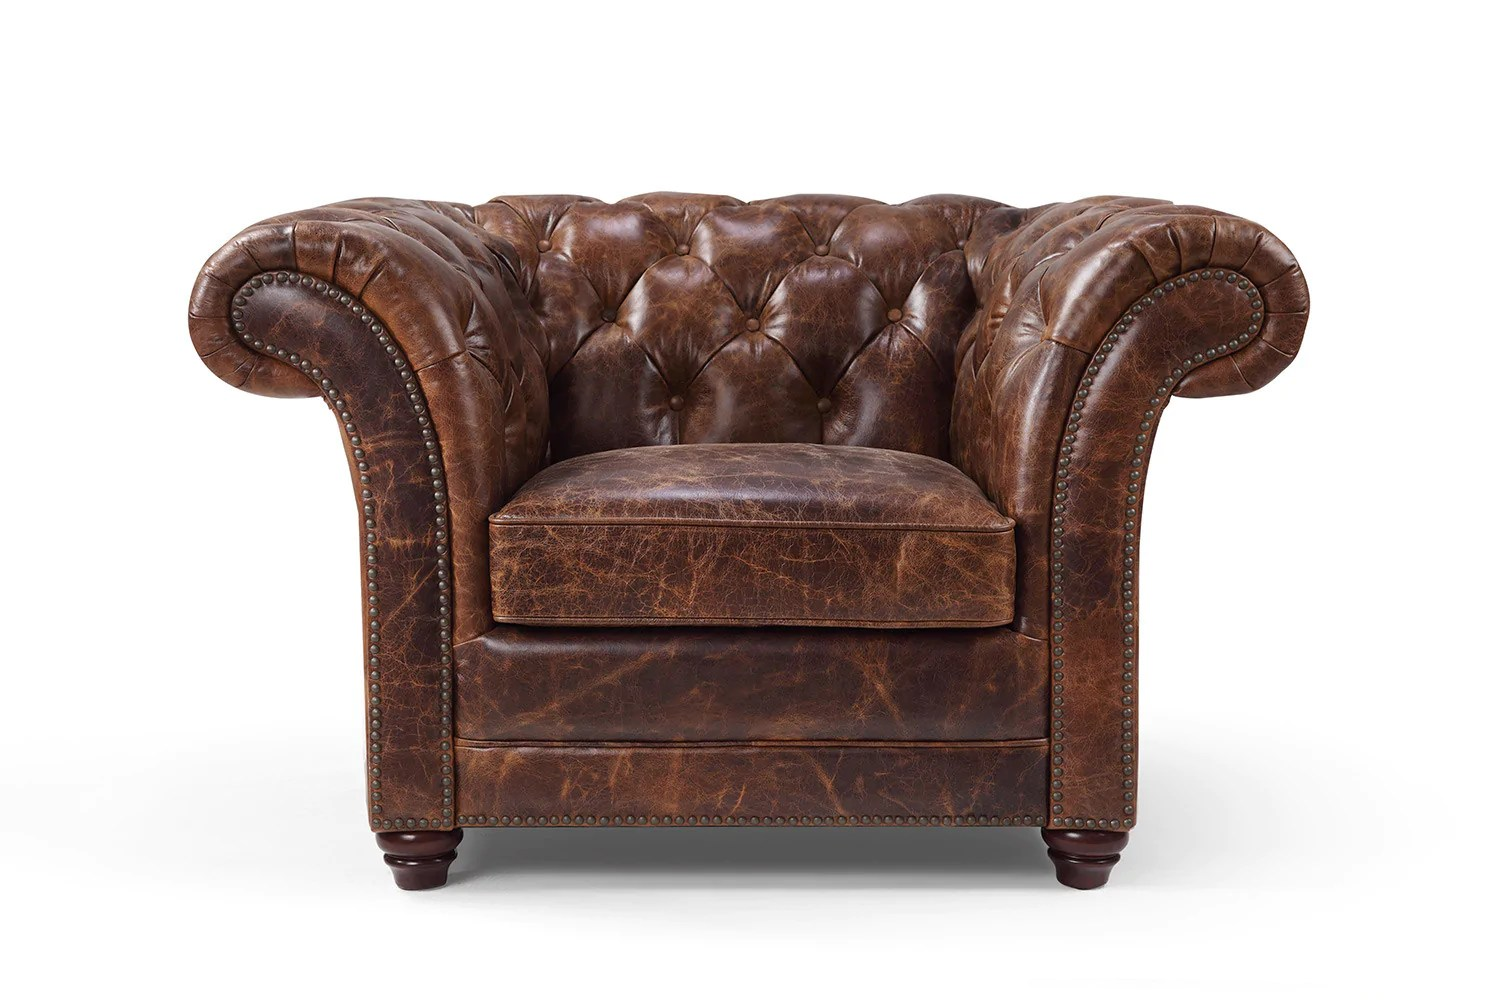 bespoke cigar sofa reupholstery cost melbourne the westminster chesterfield leather chair rose and moore